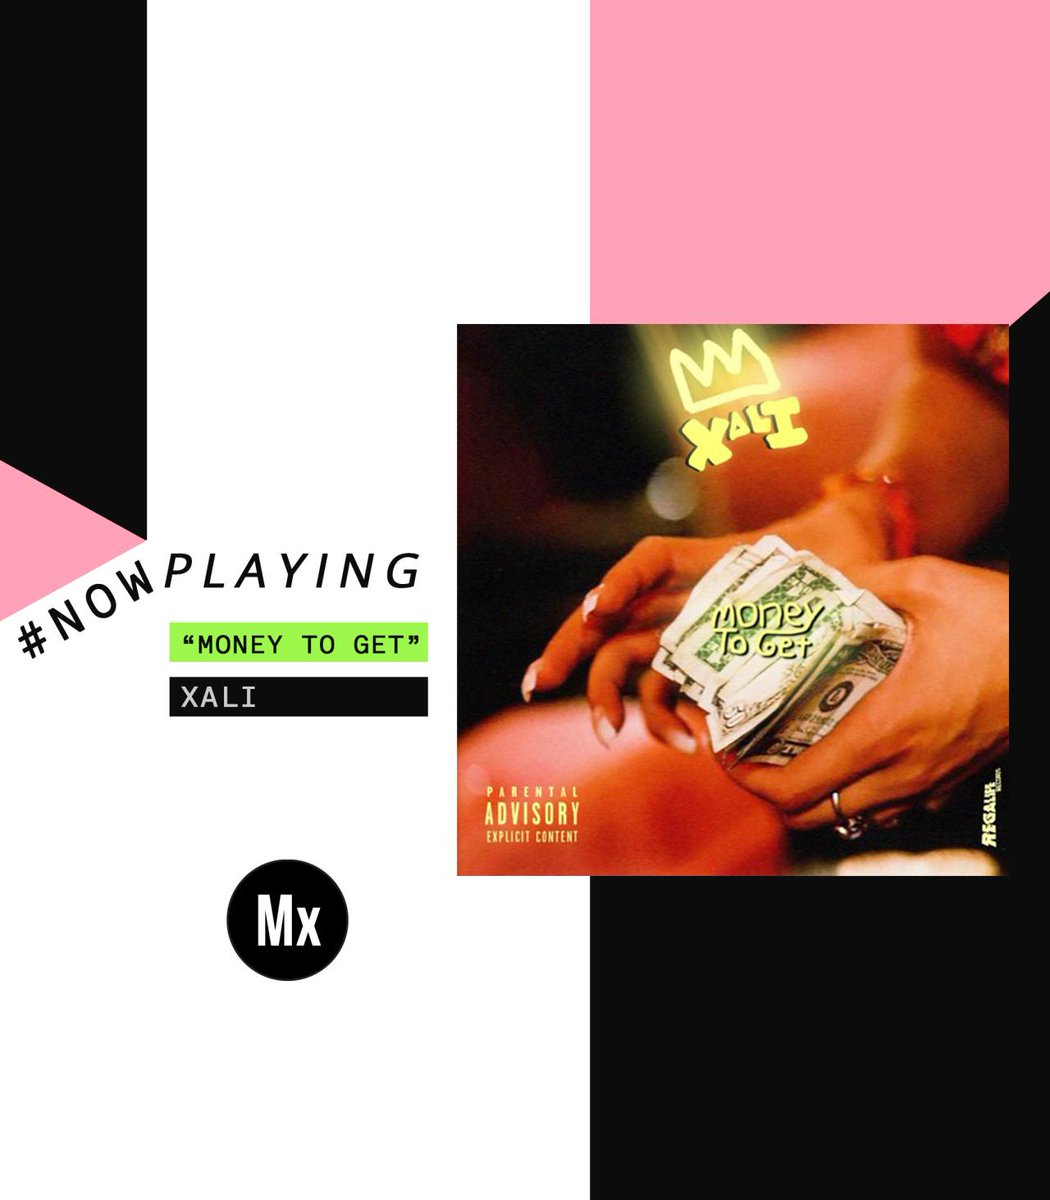 """With a lot of good energy and truth, Broward County rapper @xaliunknwn drops his latest song """"Money to Get"""".   https:// mieuxmagazine.com/xali-money-to- get/ &nbsp; … <br>http://pic.twitter.com/nvkrDP5tMN"""